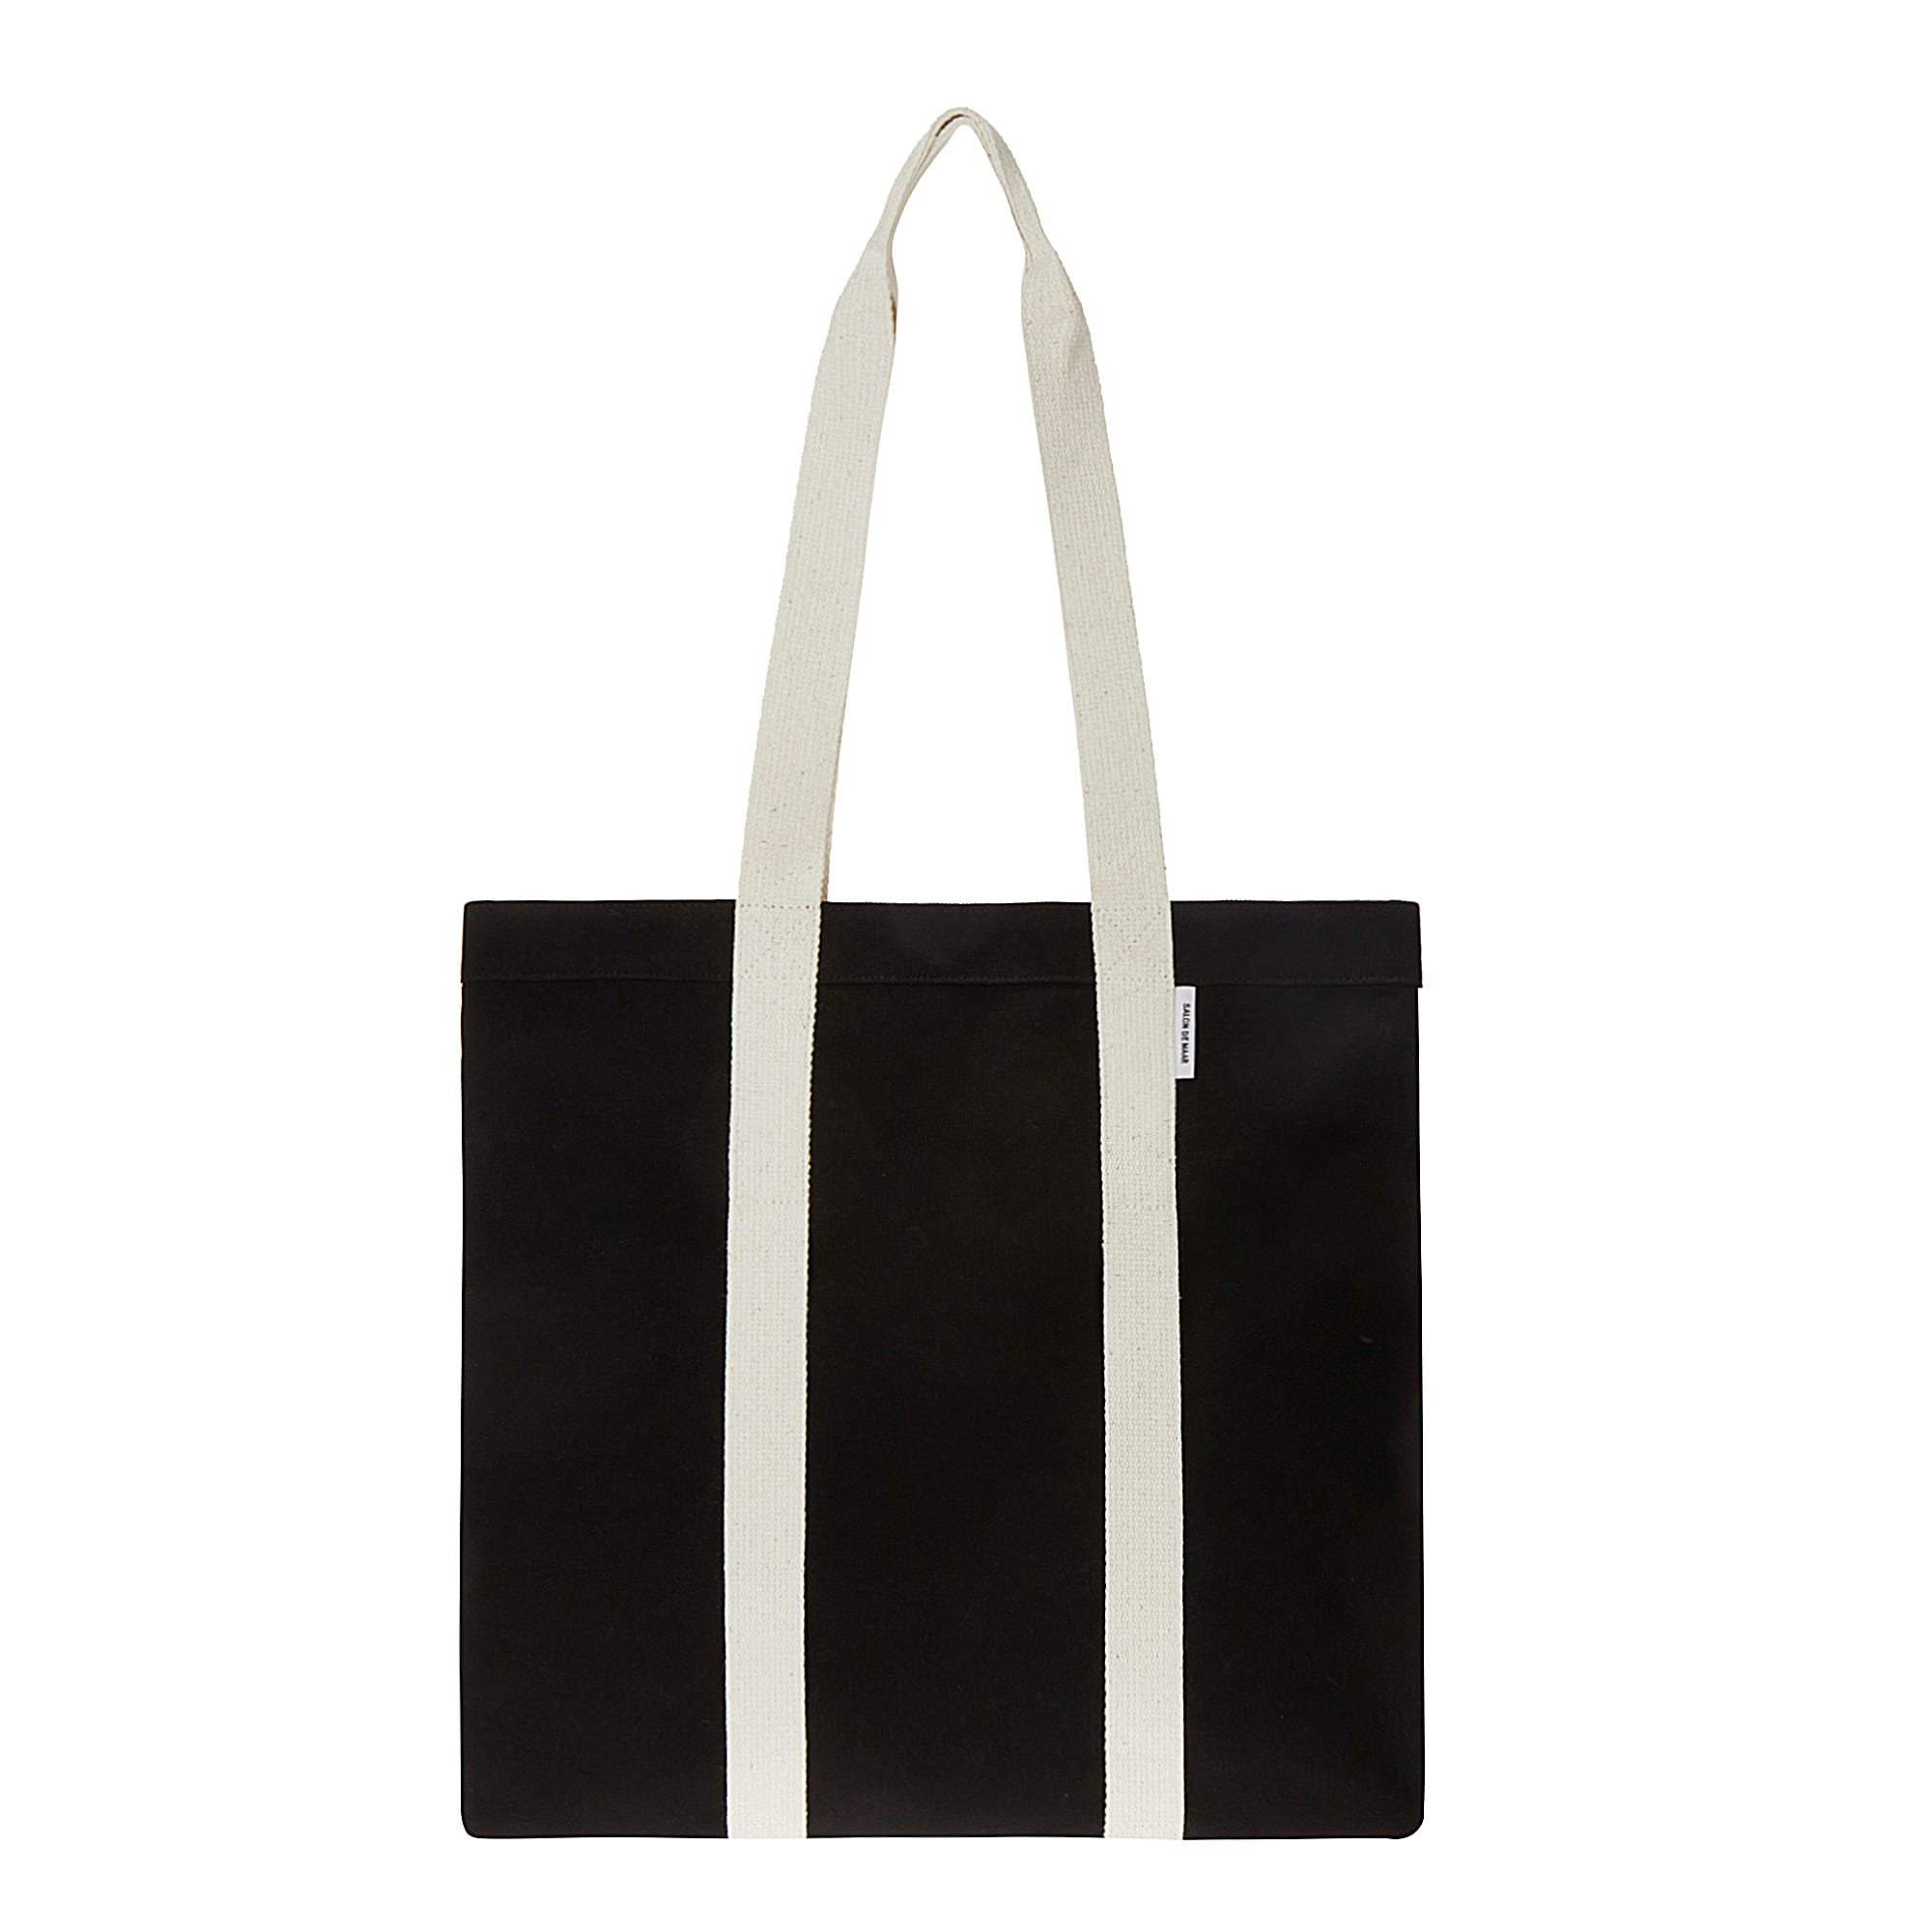 CARRY BAG BLACK & BEIGE